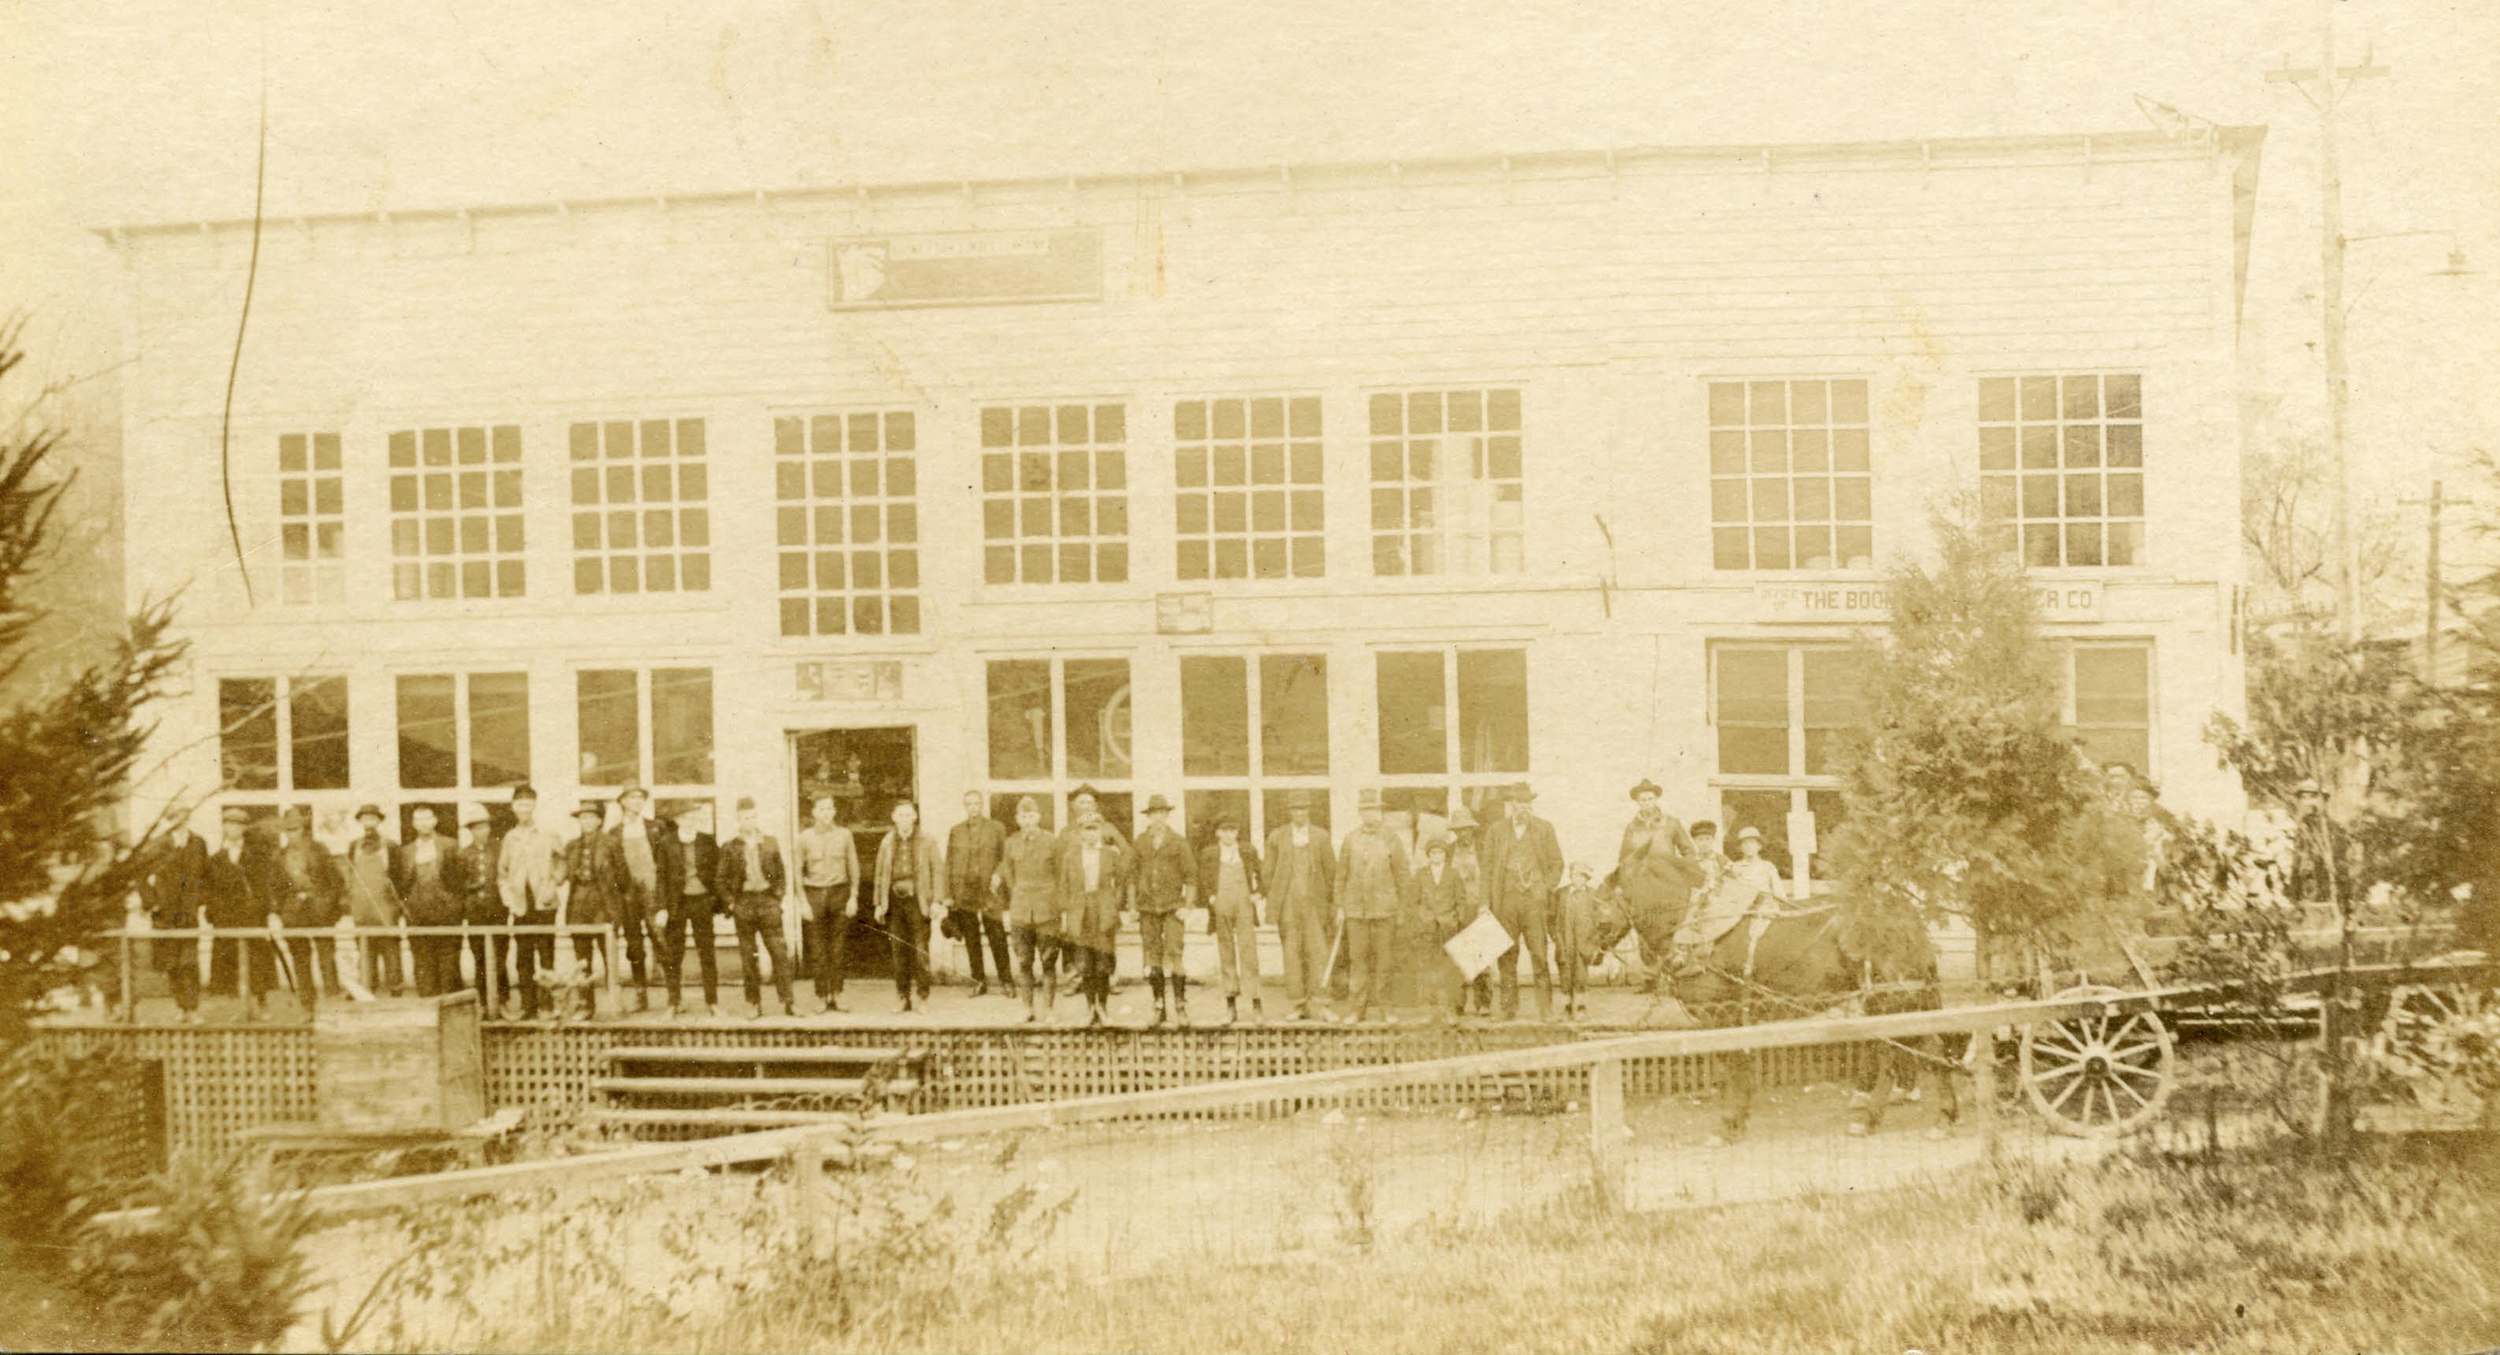 The Boone Fork Lumber Company Commissary at Shulls Mills, NC, from the forthcoming Lowery-Whiting Collection, Digital Watauga Project.